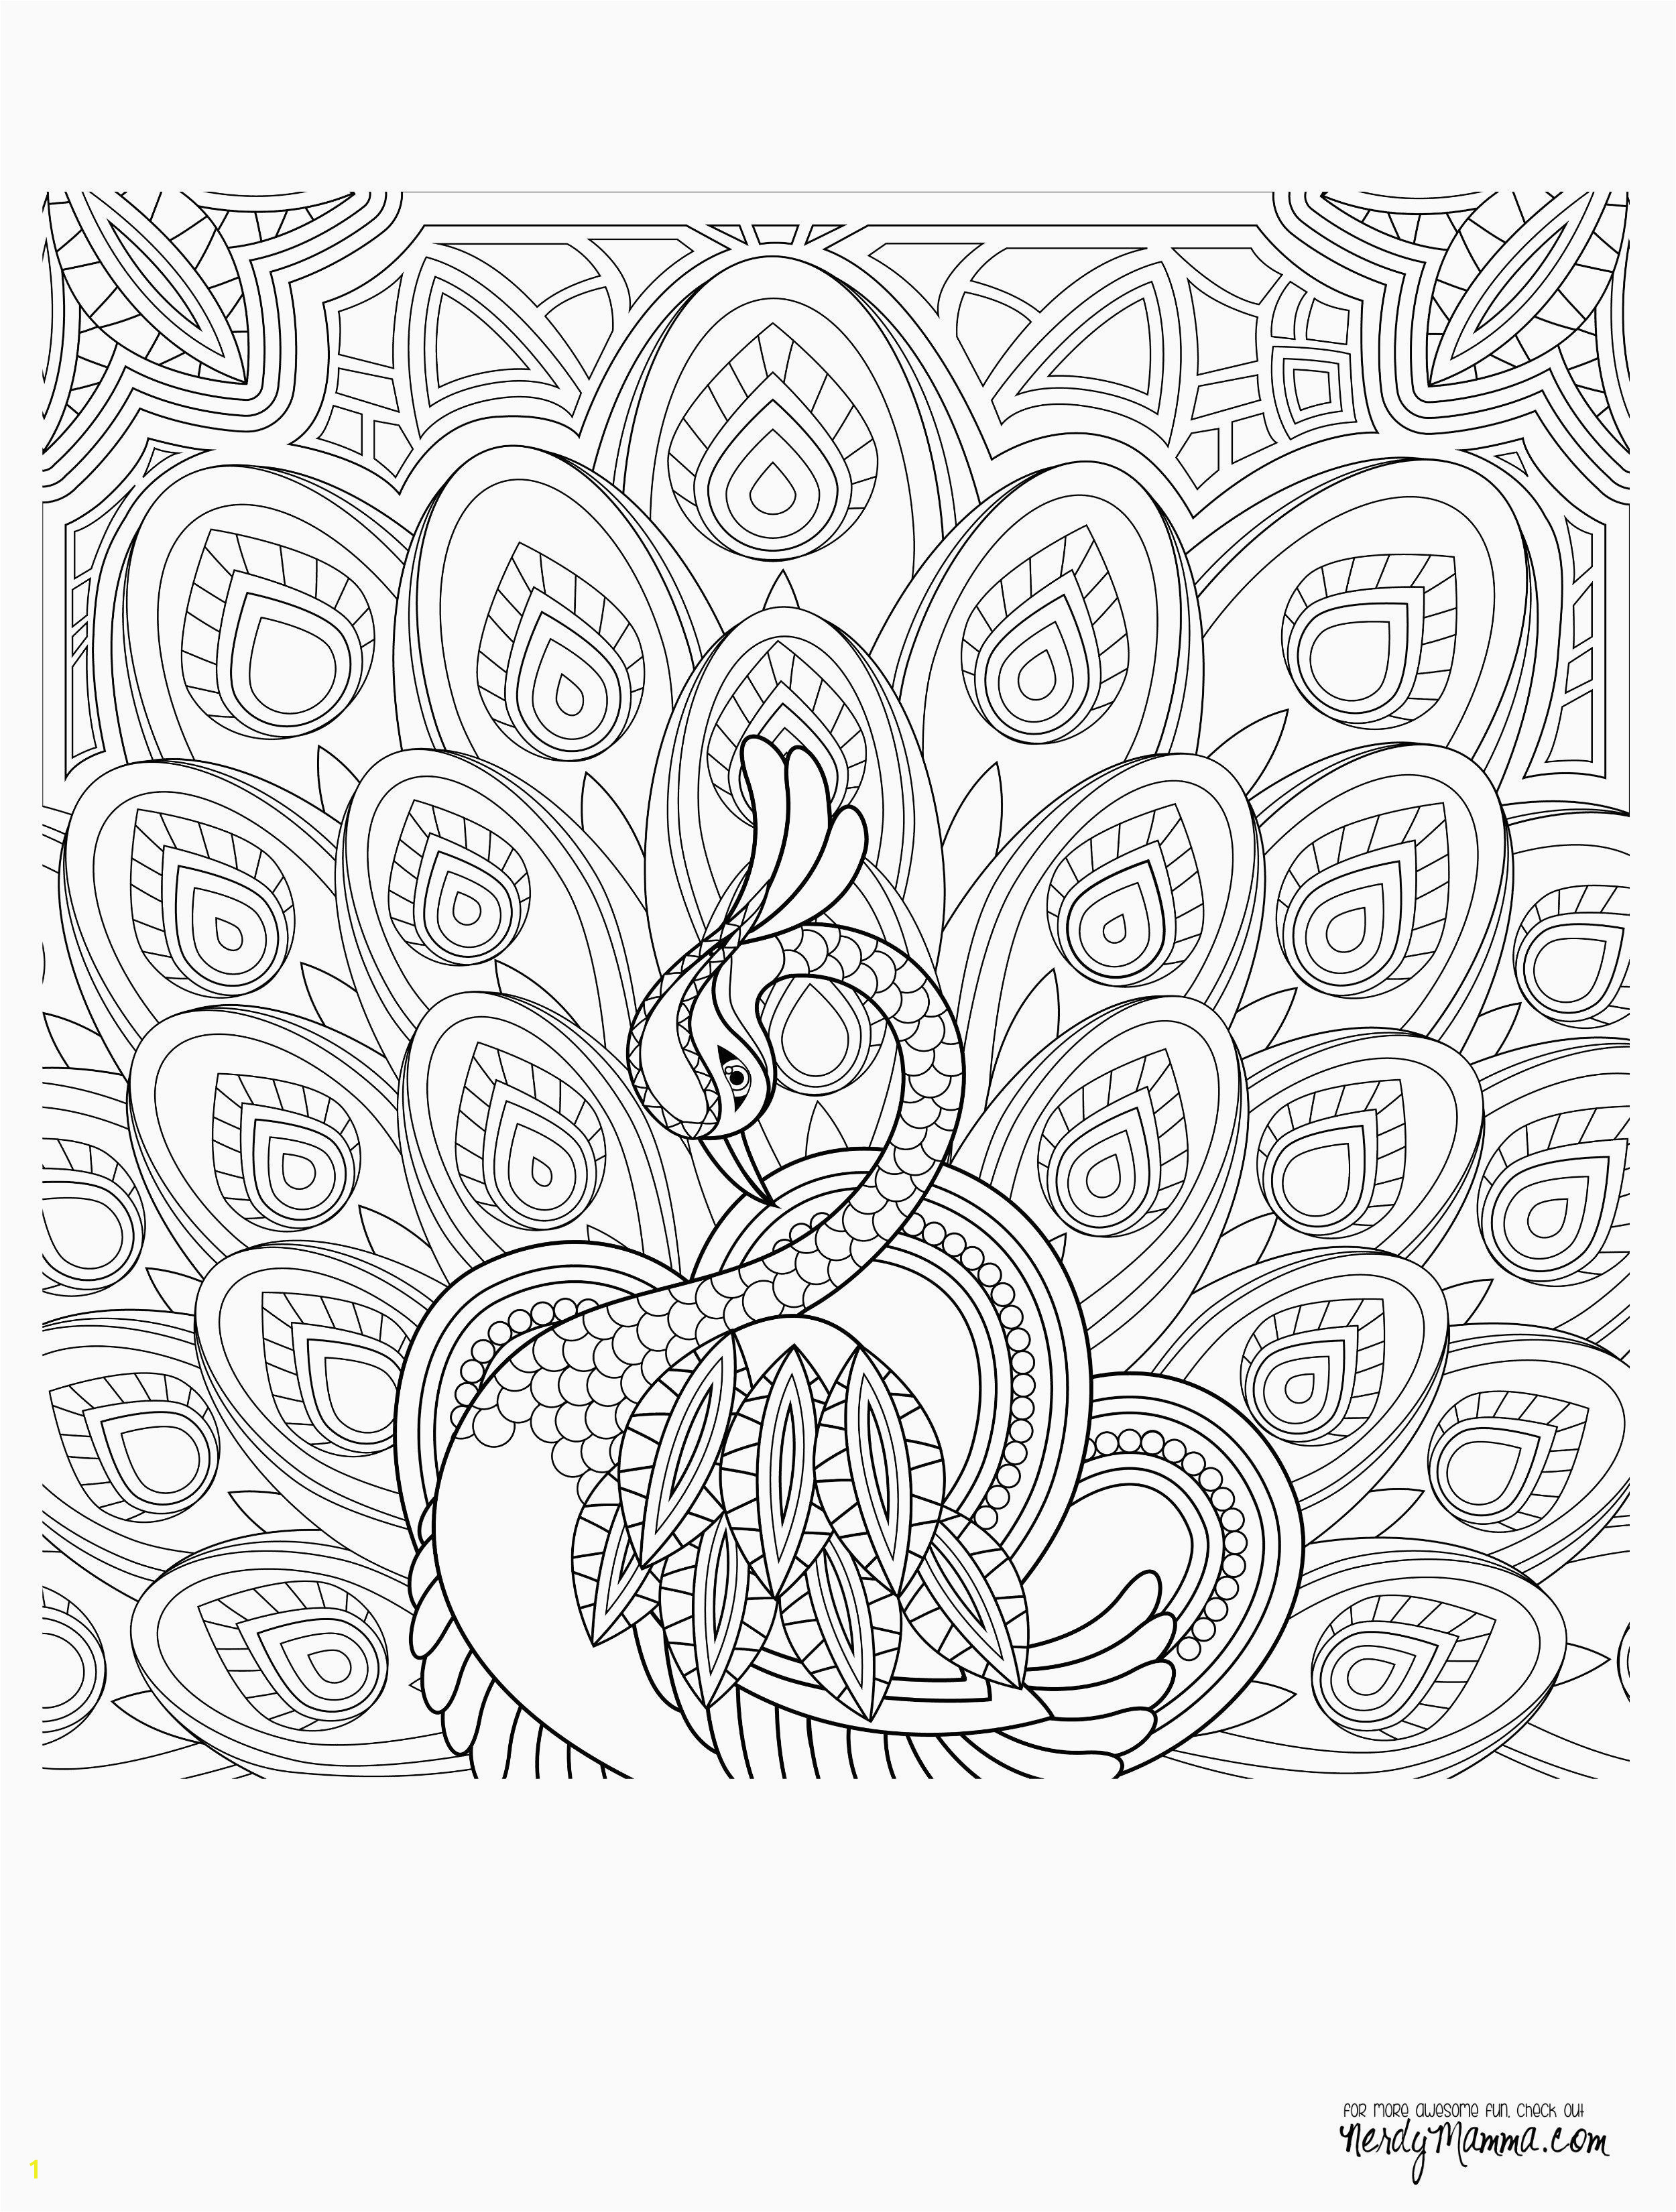 Coloring Pages for Adults to Print Free Free Printable Coloring Pages for Adults Best Awesome Coloring